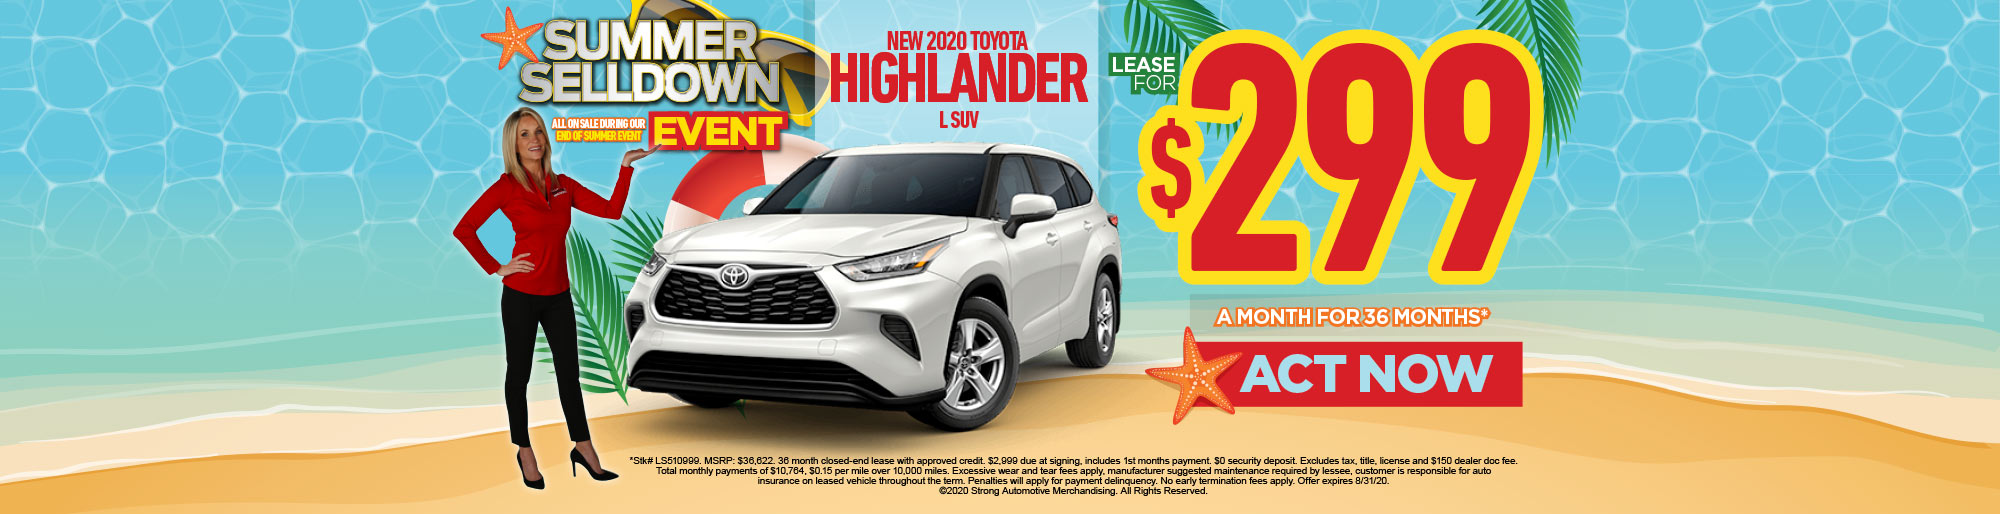 LEASE A NEW 2020 HIGHLANDER L SUV FOR $299/MO** - ACT NOW